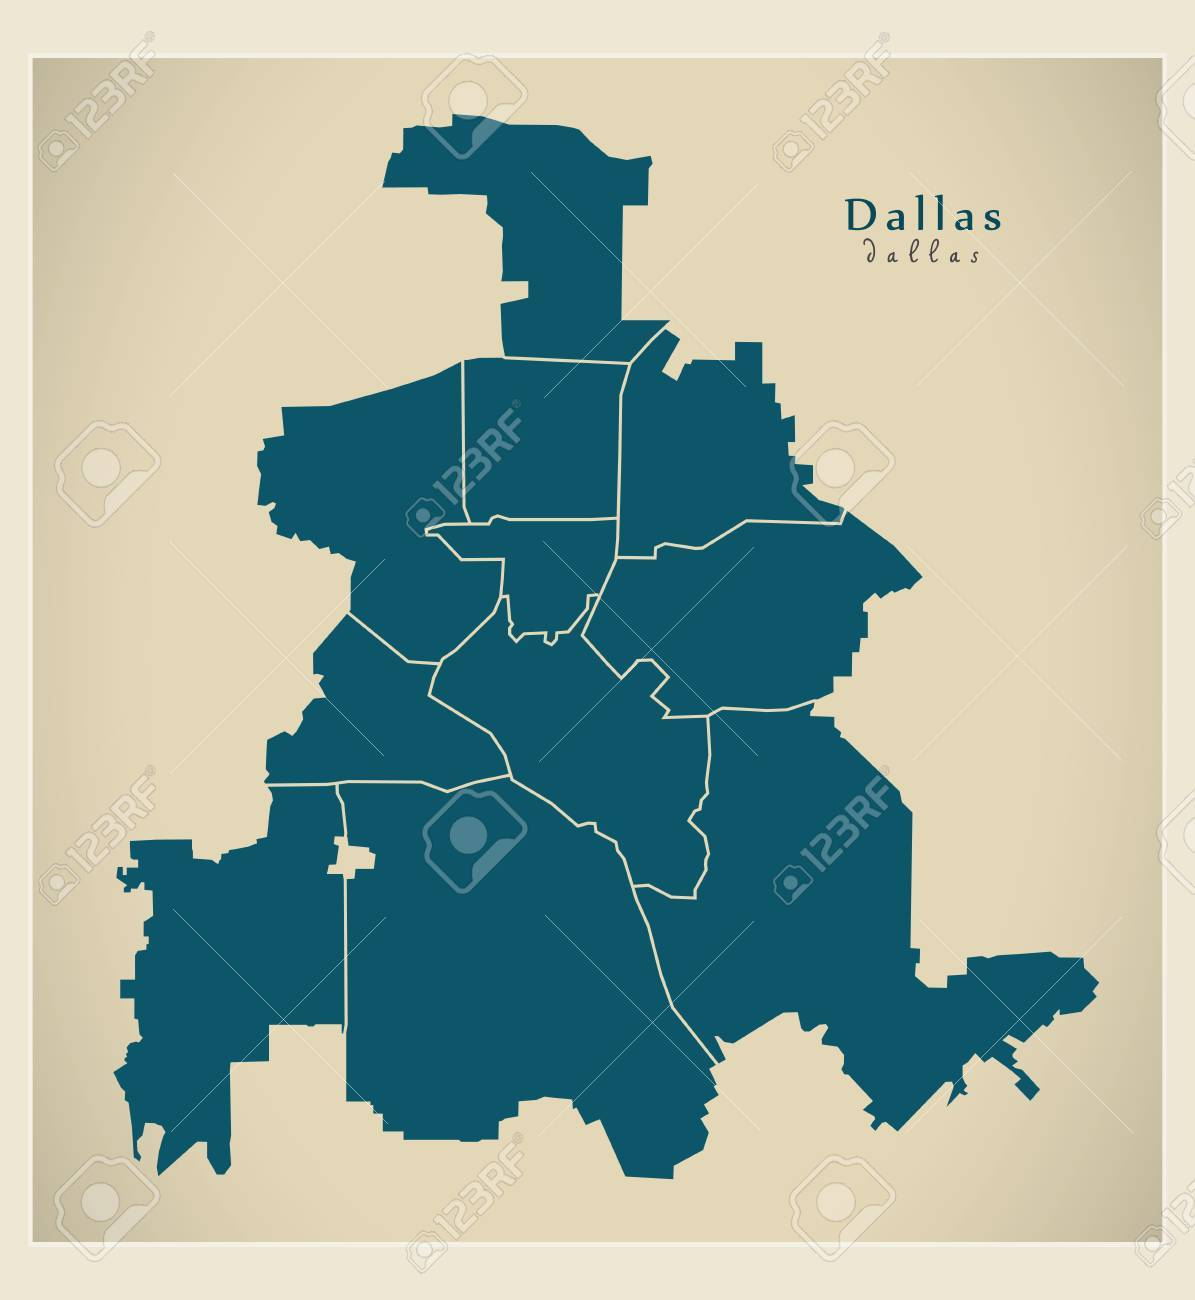 Modern City Map Dallas Texas City Of The Usa With Boroughs